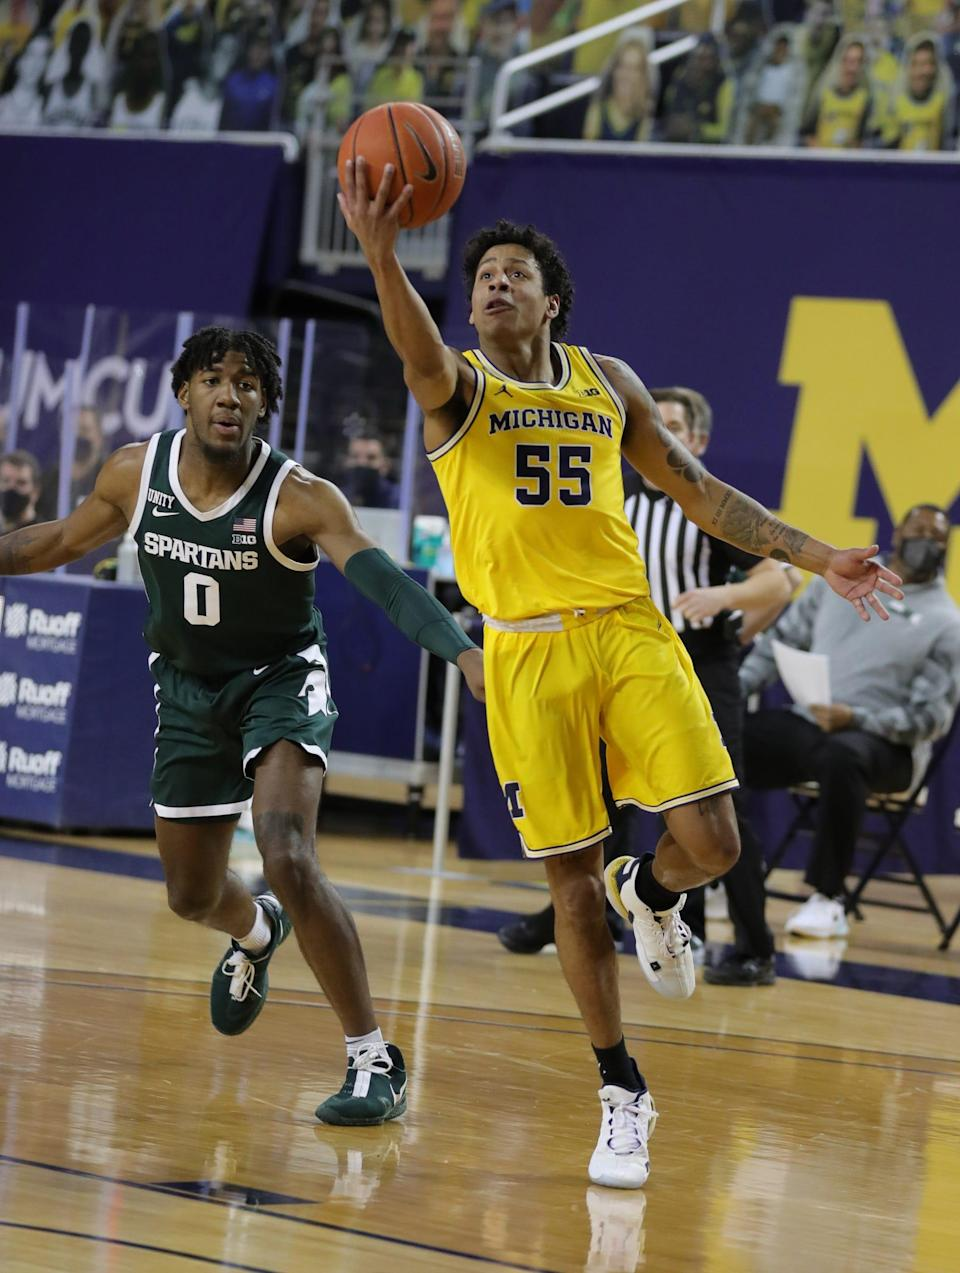 Michigan Wolverines guard Eli Brooks scores against Michigan State Spartans forward Aaron Henry on Thursday, March 4, 2021 at Crisler Center in Ann Arbor.